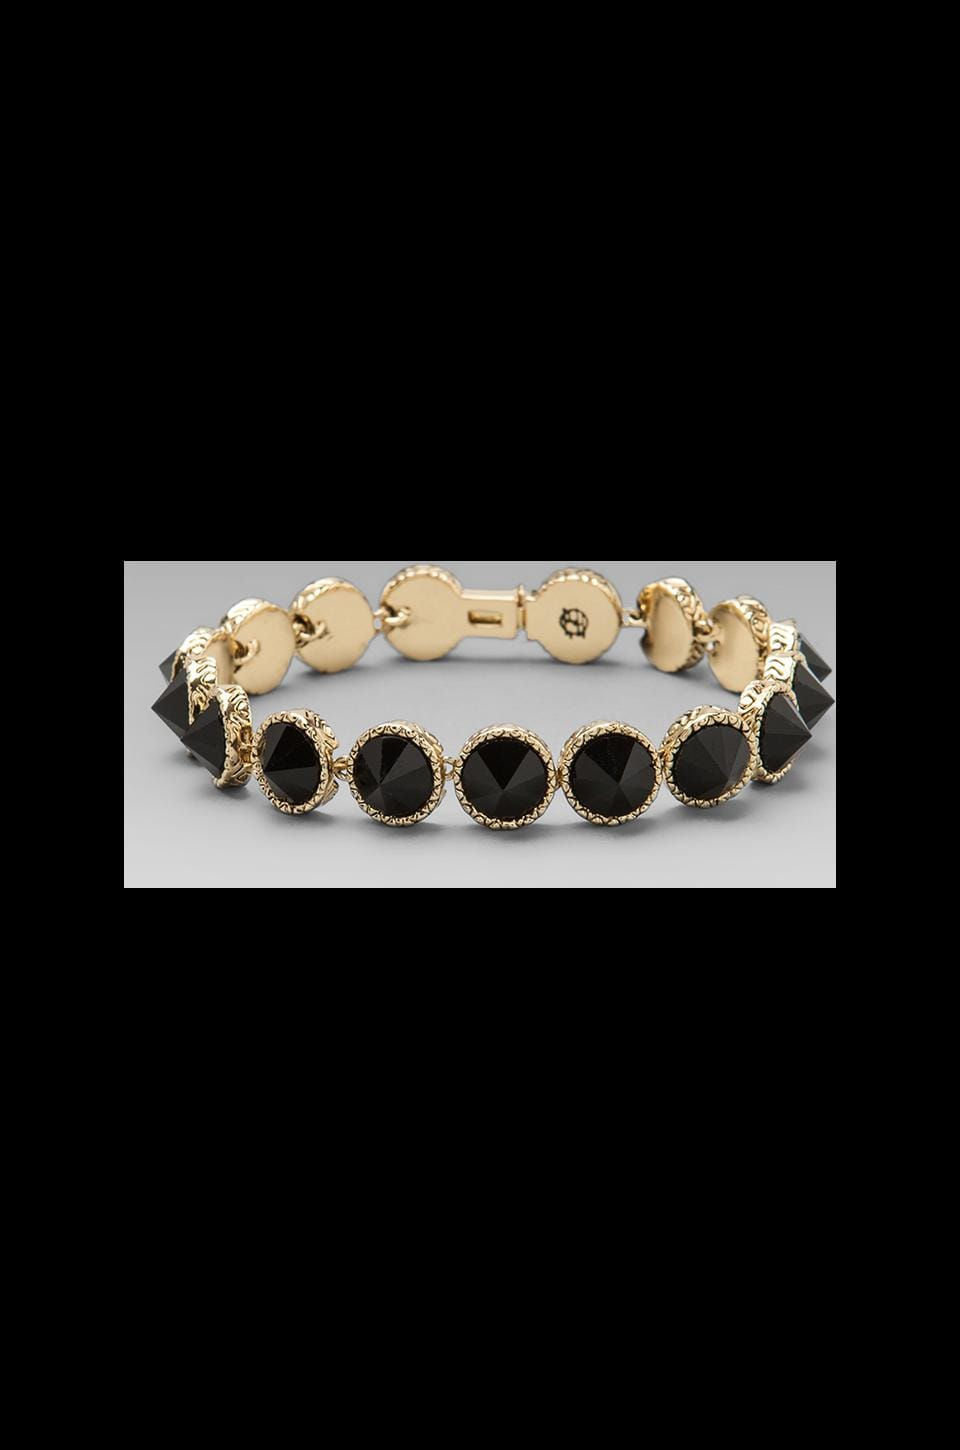 House of Harlow 1960 House of Harlow Black is the New Tennis Bracelet in Gold/Black